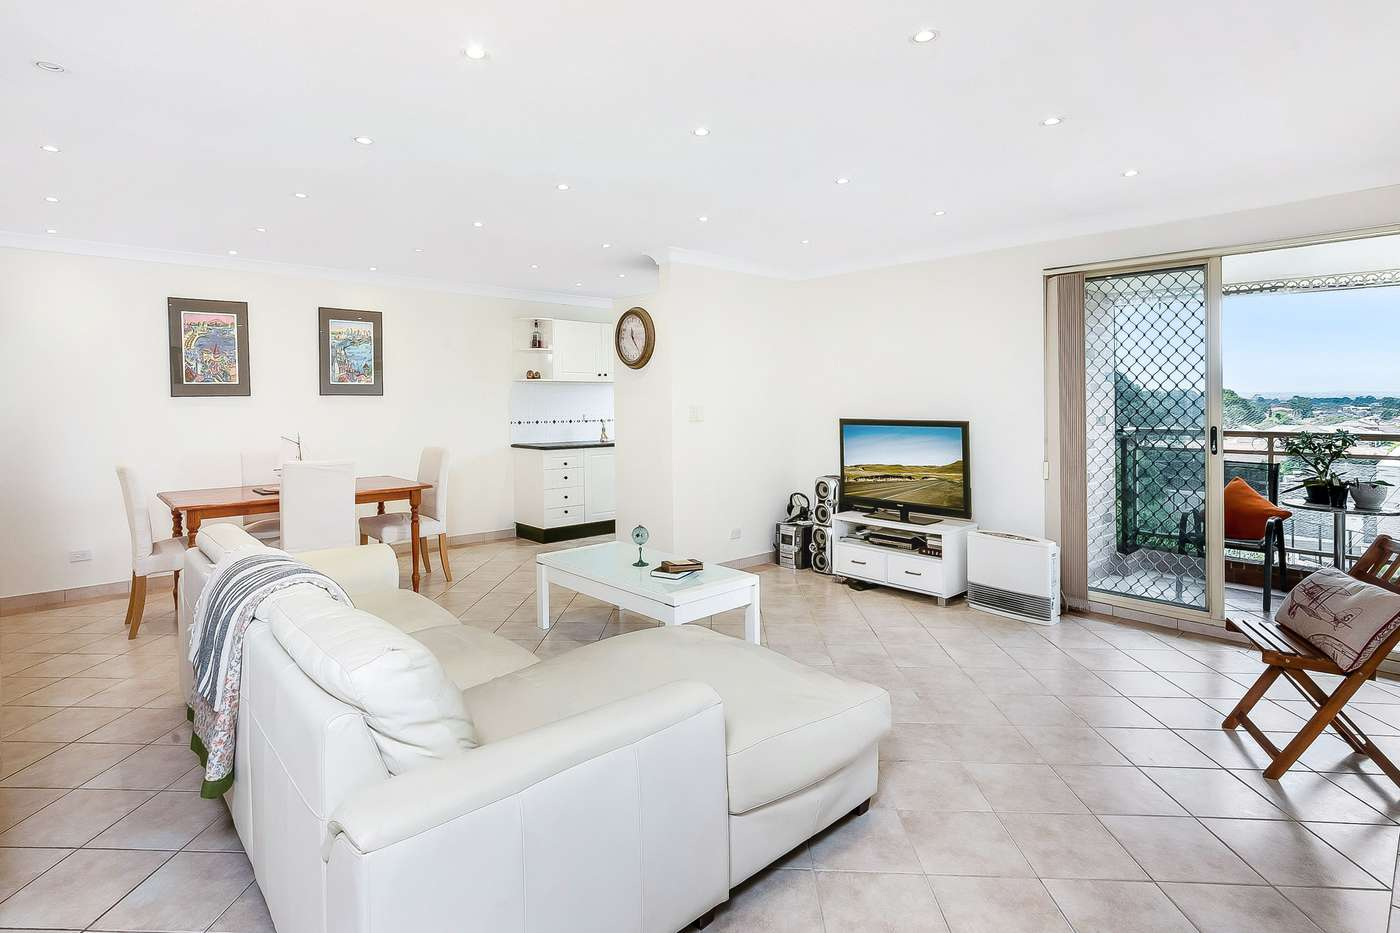 Main view of Homely unit listing, 13/78-80 Brancourt Avenue, Yagoona, NSW 2199